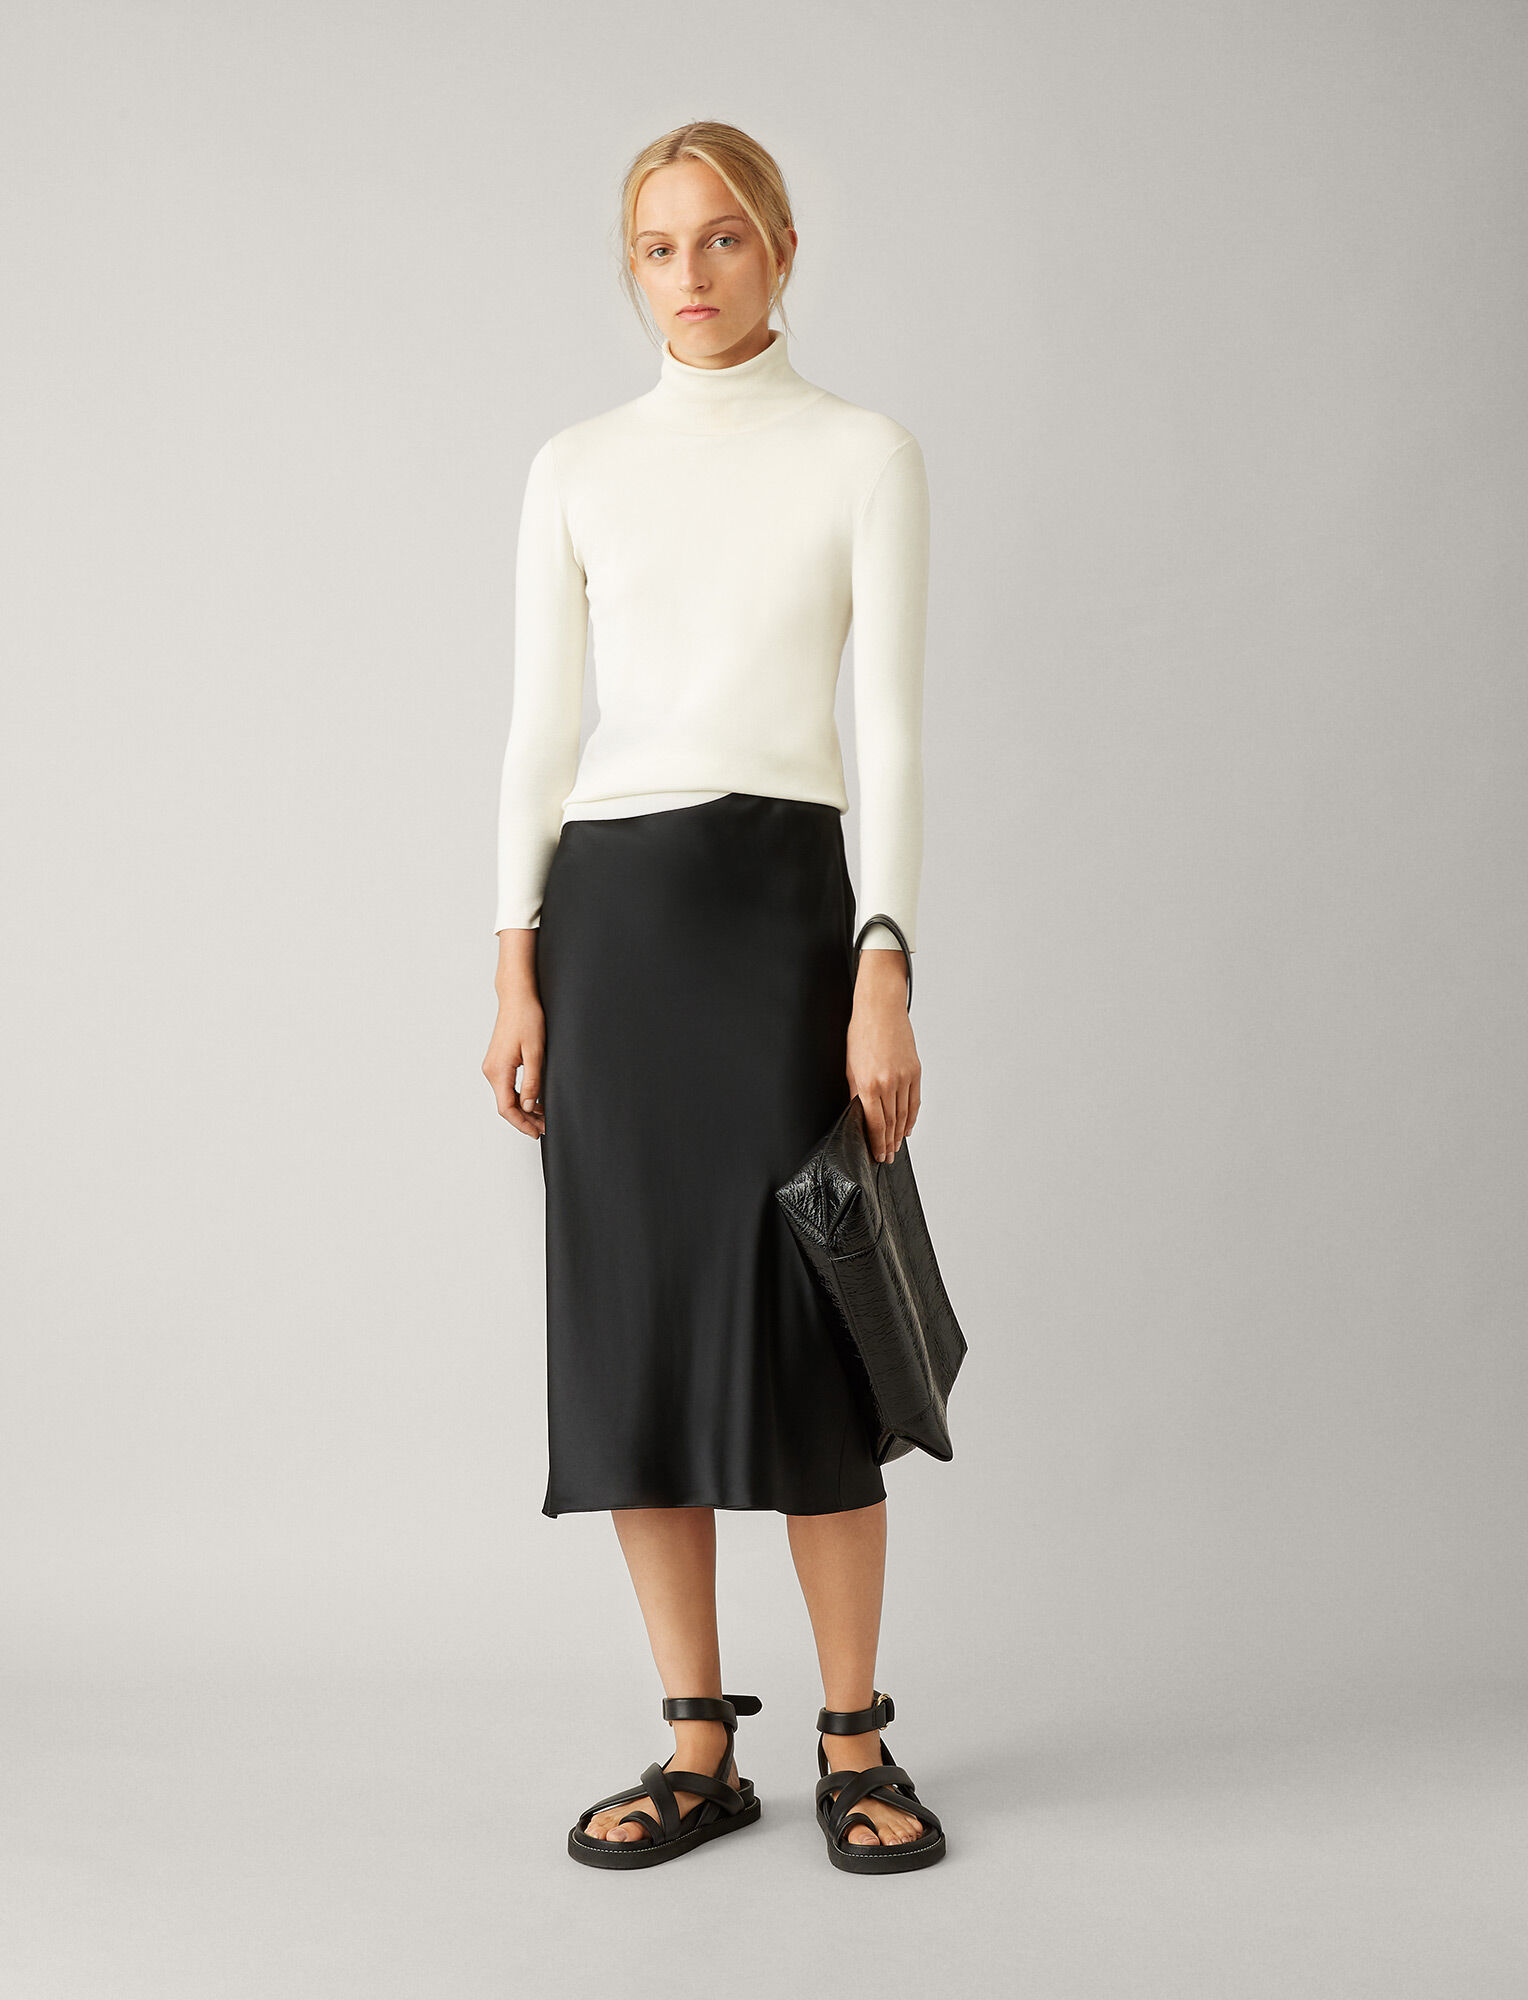 Joseph, Turtle Neck Silk Stretch Knit, in IVORY